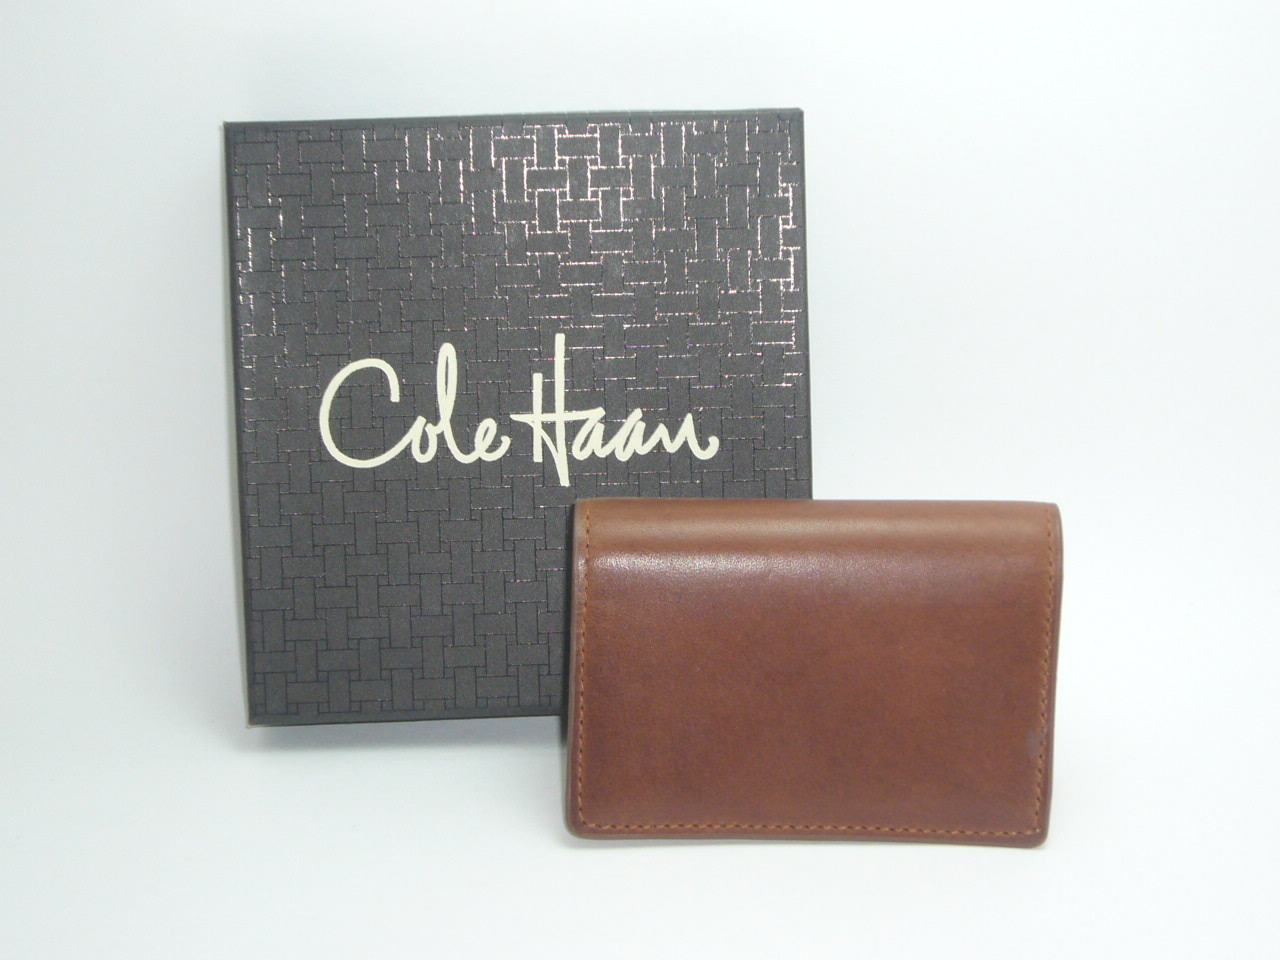 Cole Haan Leather Gusset Card Case Paladino Collection...Papaya